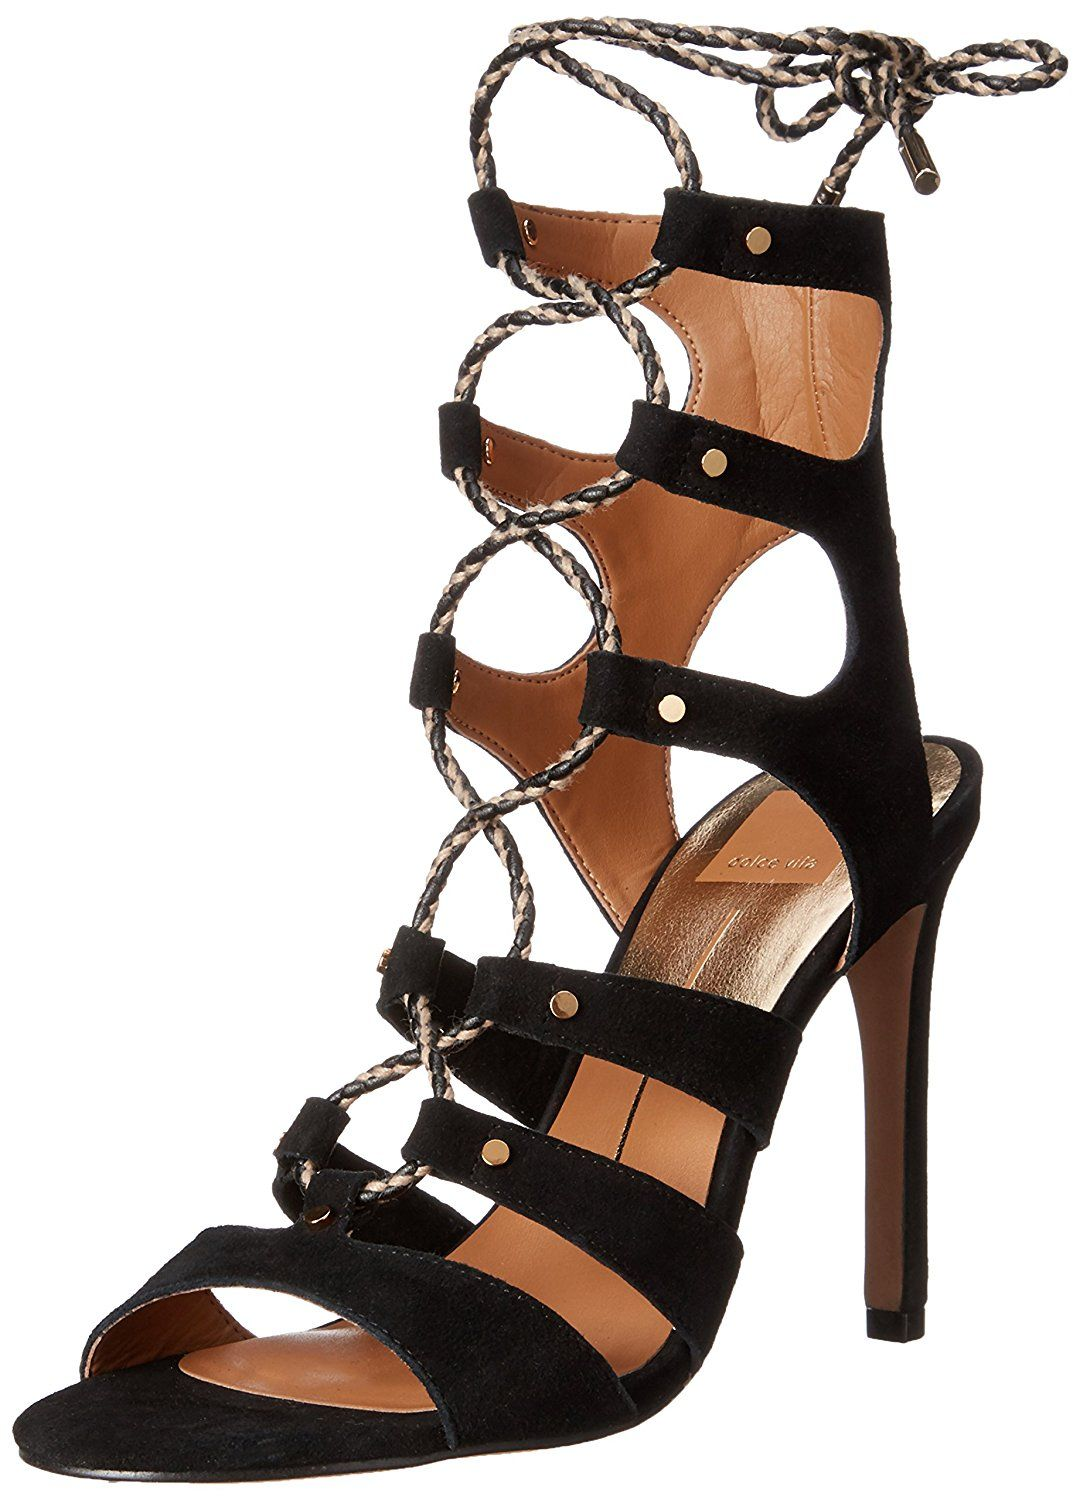 3b98212db84 Dolce Vita Women s Howie Gladiator Sandal     You can get more details here    Block heel sandals